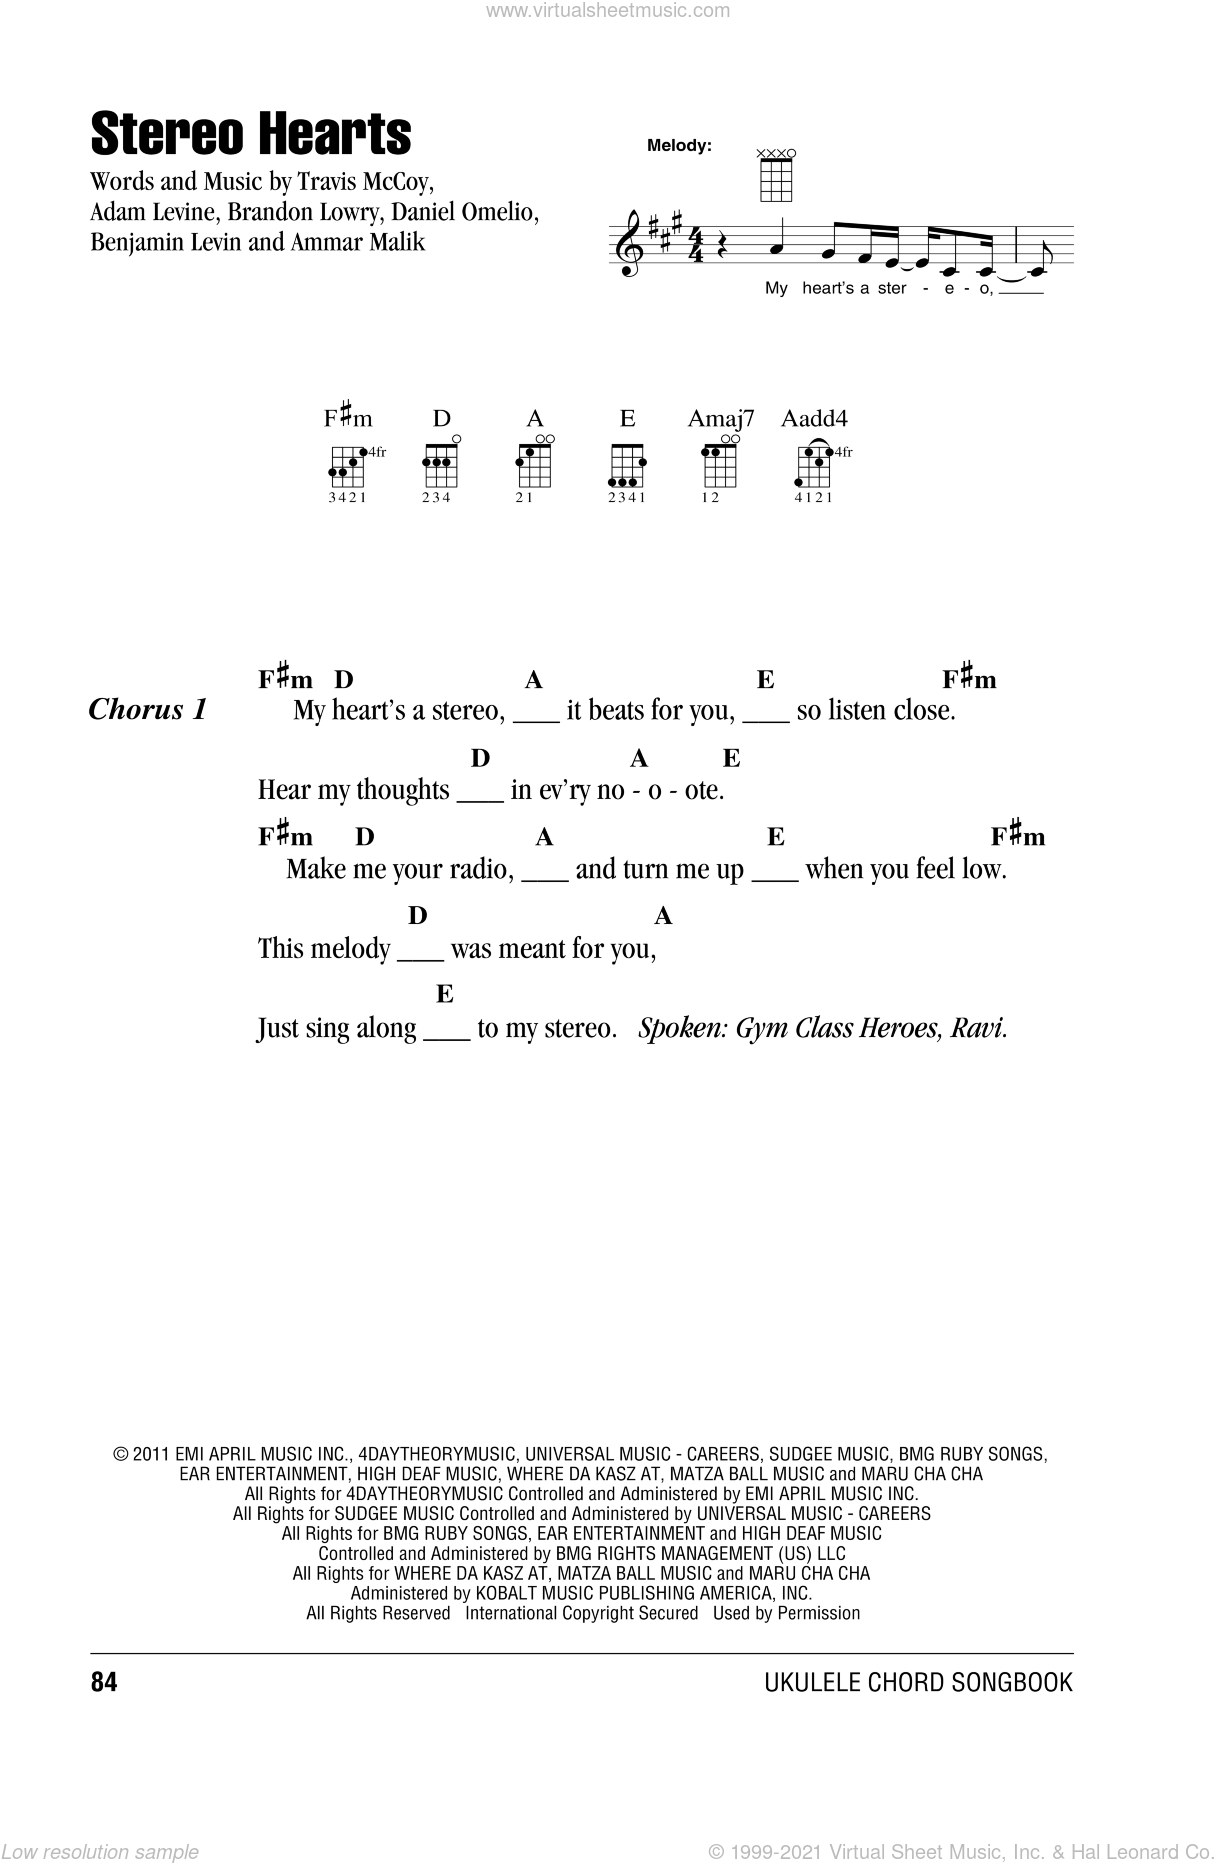 Heroes - Stereo Hearts sheet music for ukulele (chords) [PDF]